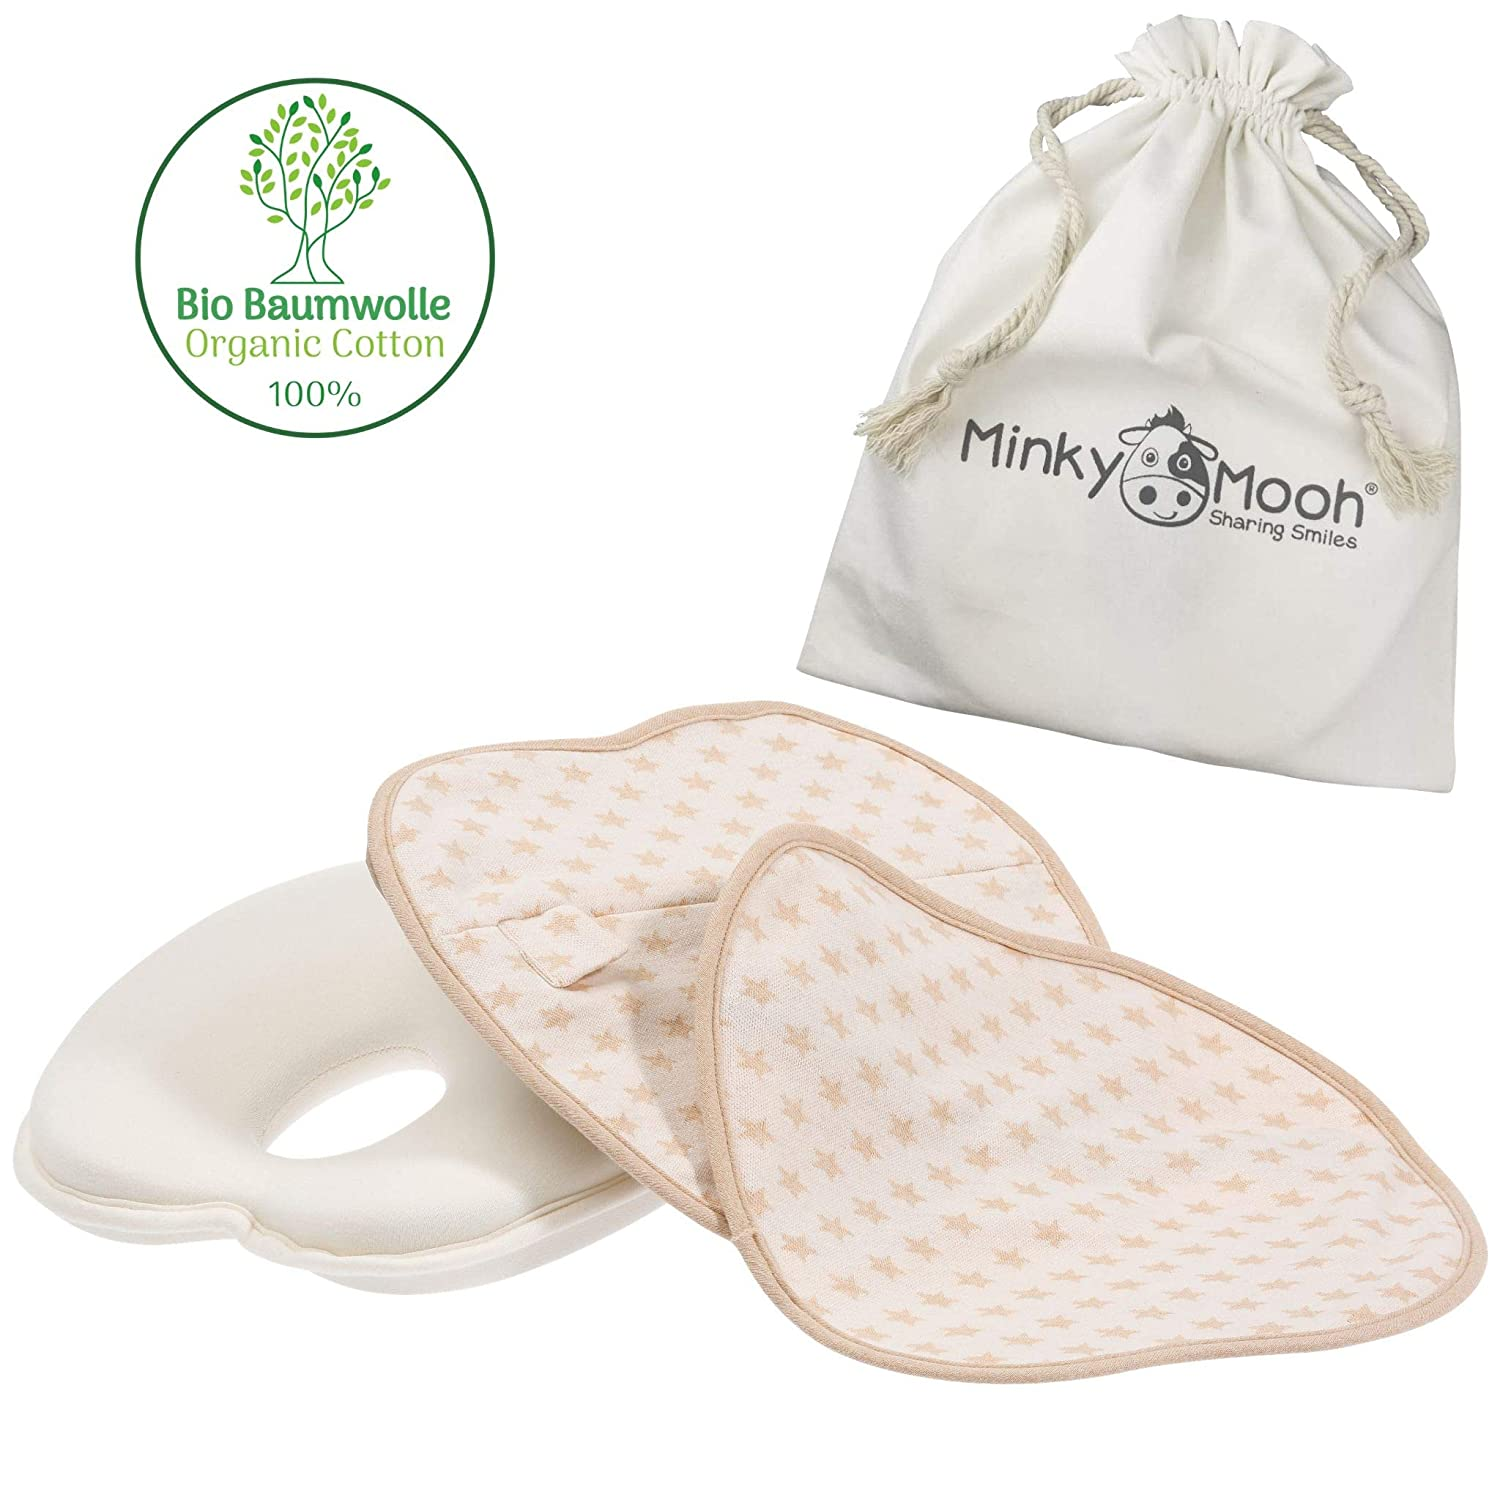 Minky Mooh Flat Head Baby Pillow Set - 2 Organic Cotton Cases   Natural Baby Head Shaping Pillow for Newborns & Infants. Prevent Newborn Baby Flathead Syndrome